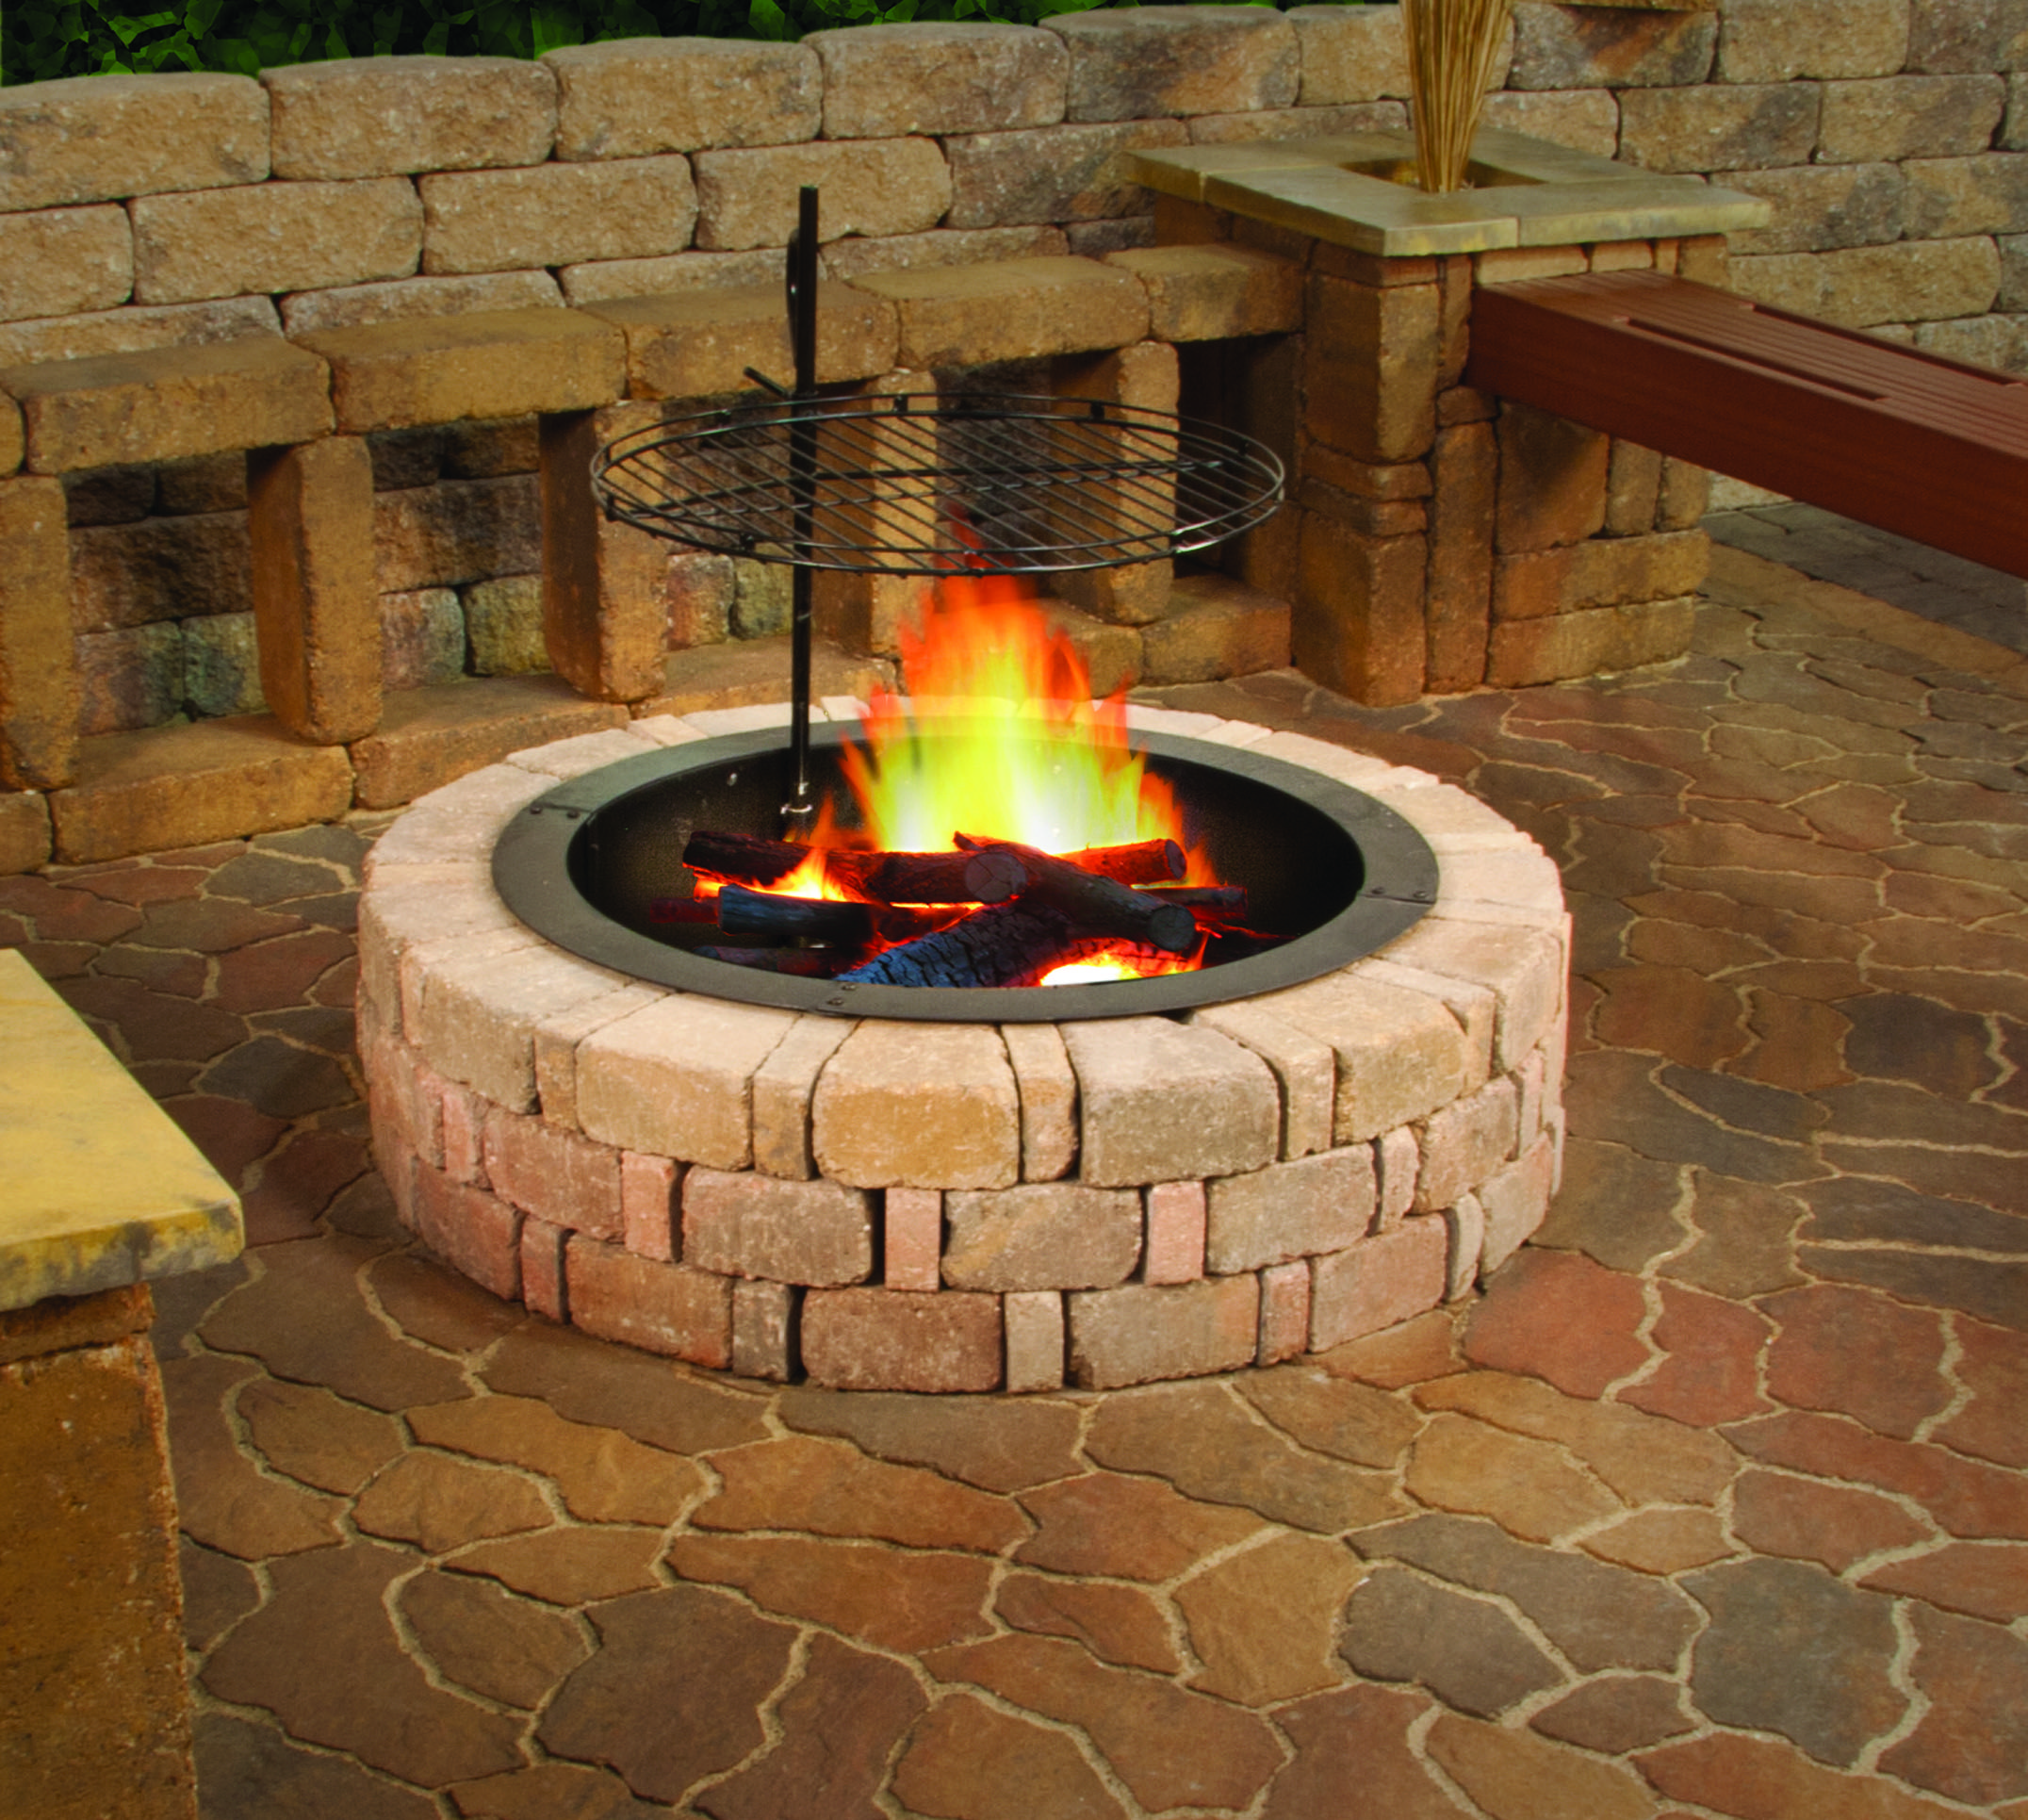 Pin by Menards on Outdoor Oasis Fire ring, Outdoor